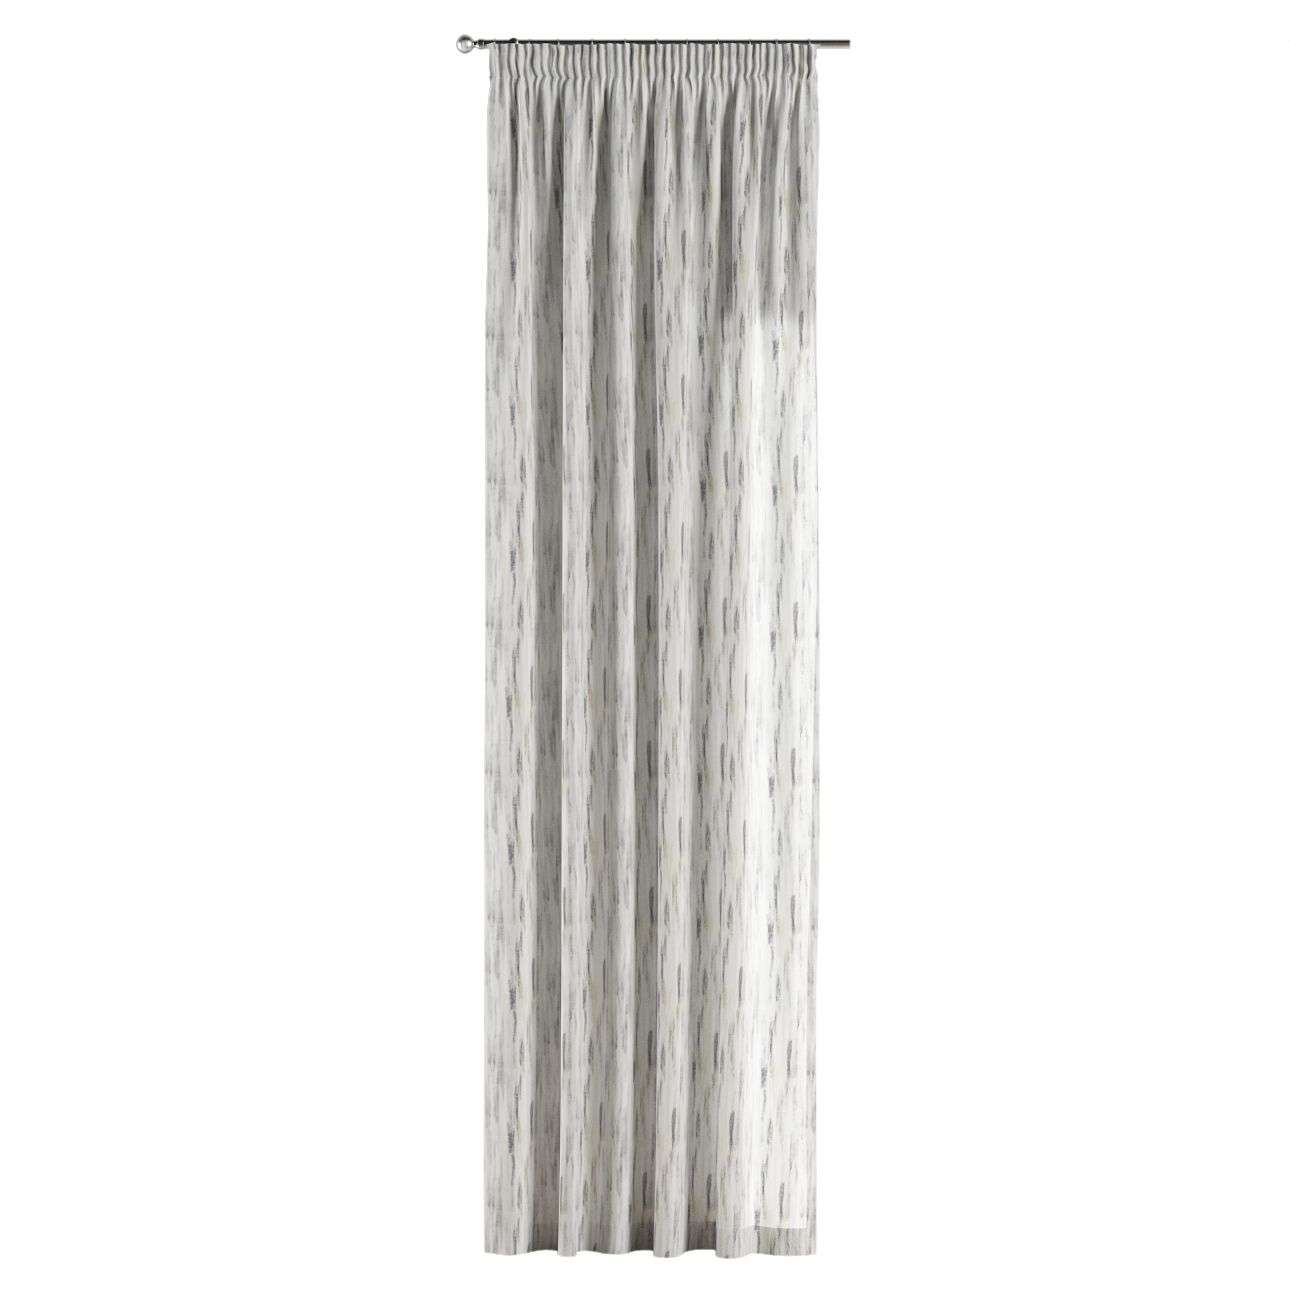 Pencil pleat curtains in collection Aquarelle, fabric: 140-66